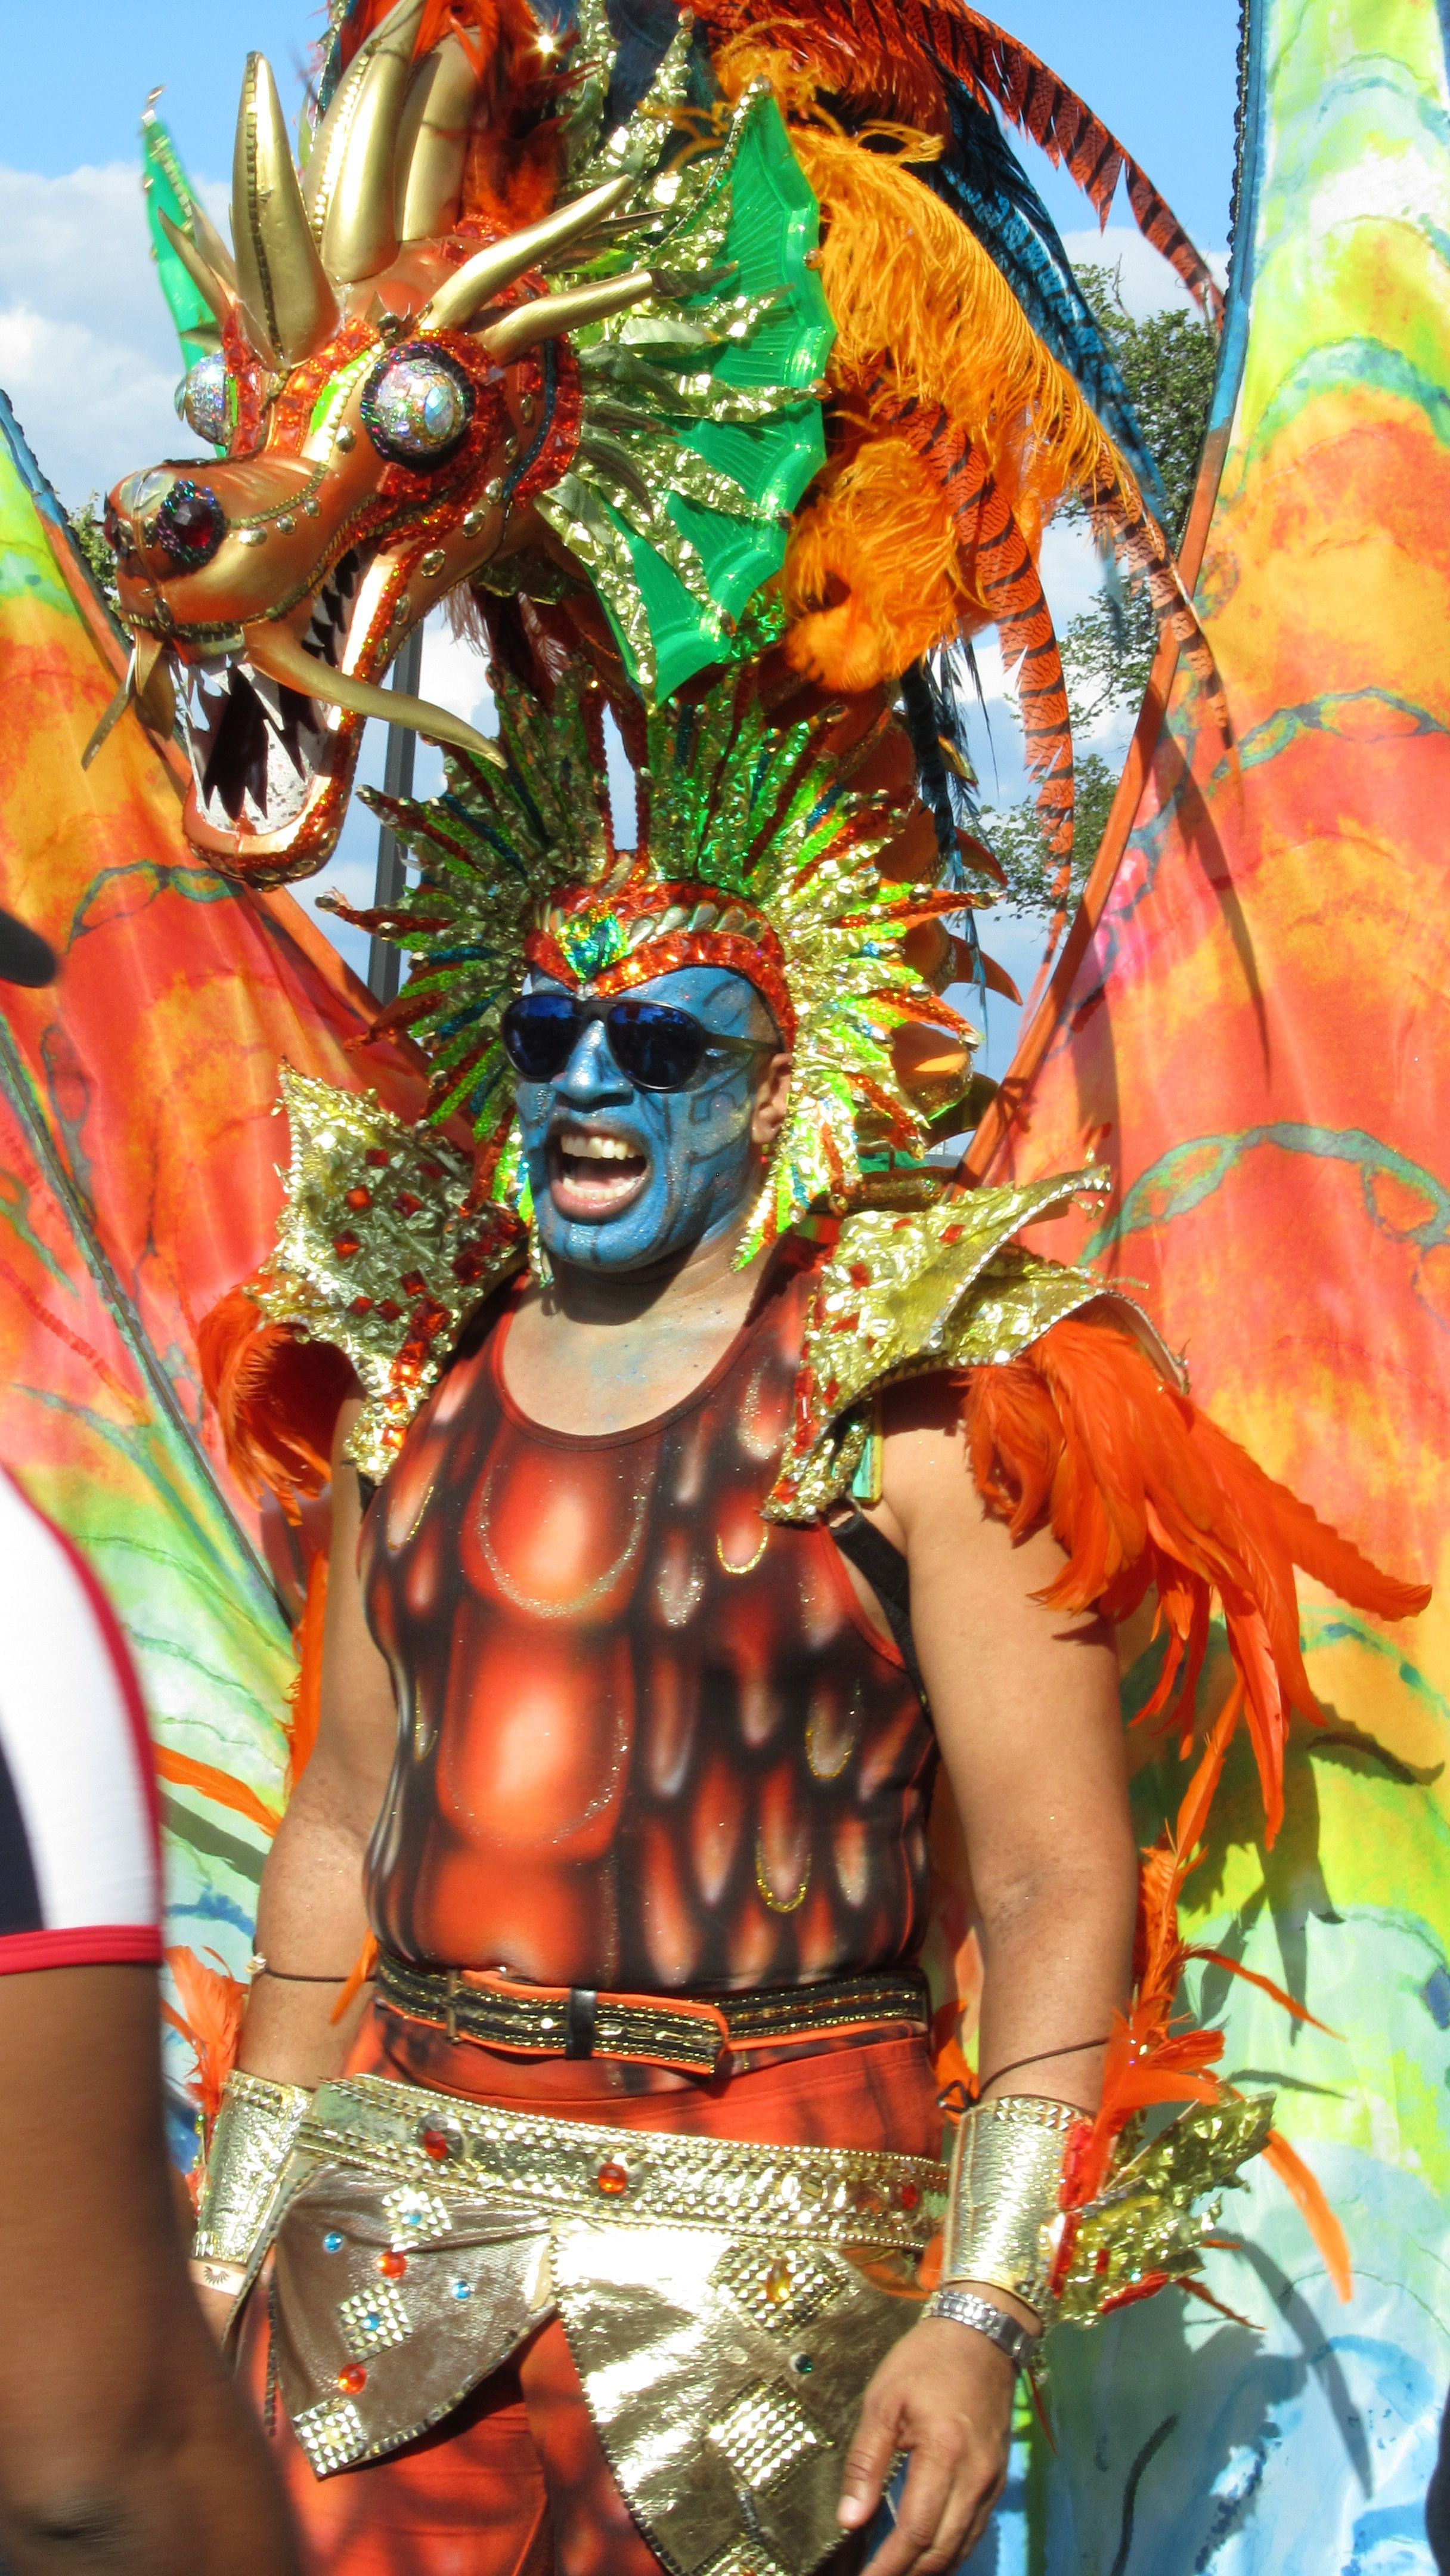 West Indian Day Parade 2016 - New York City - Jamaicans.com |West Indian Carnival Queen